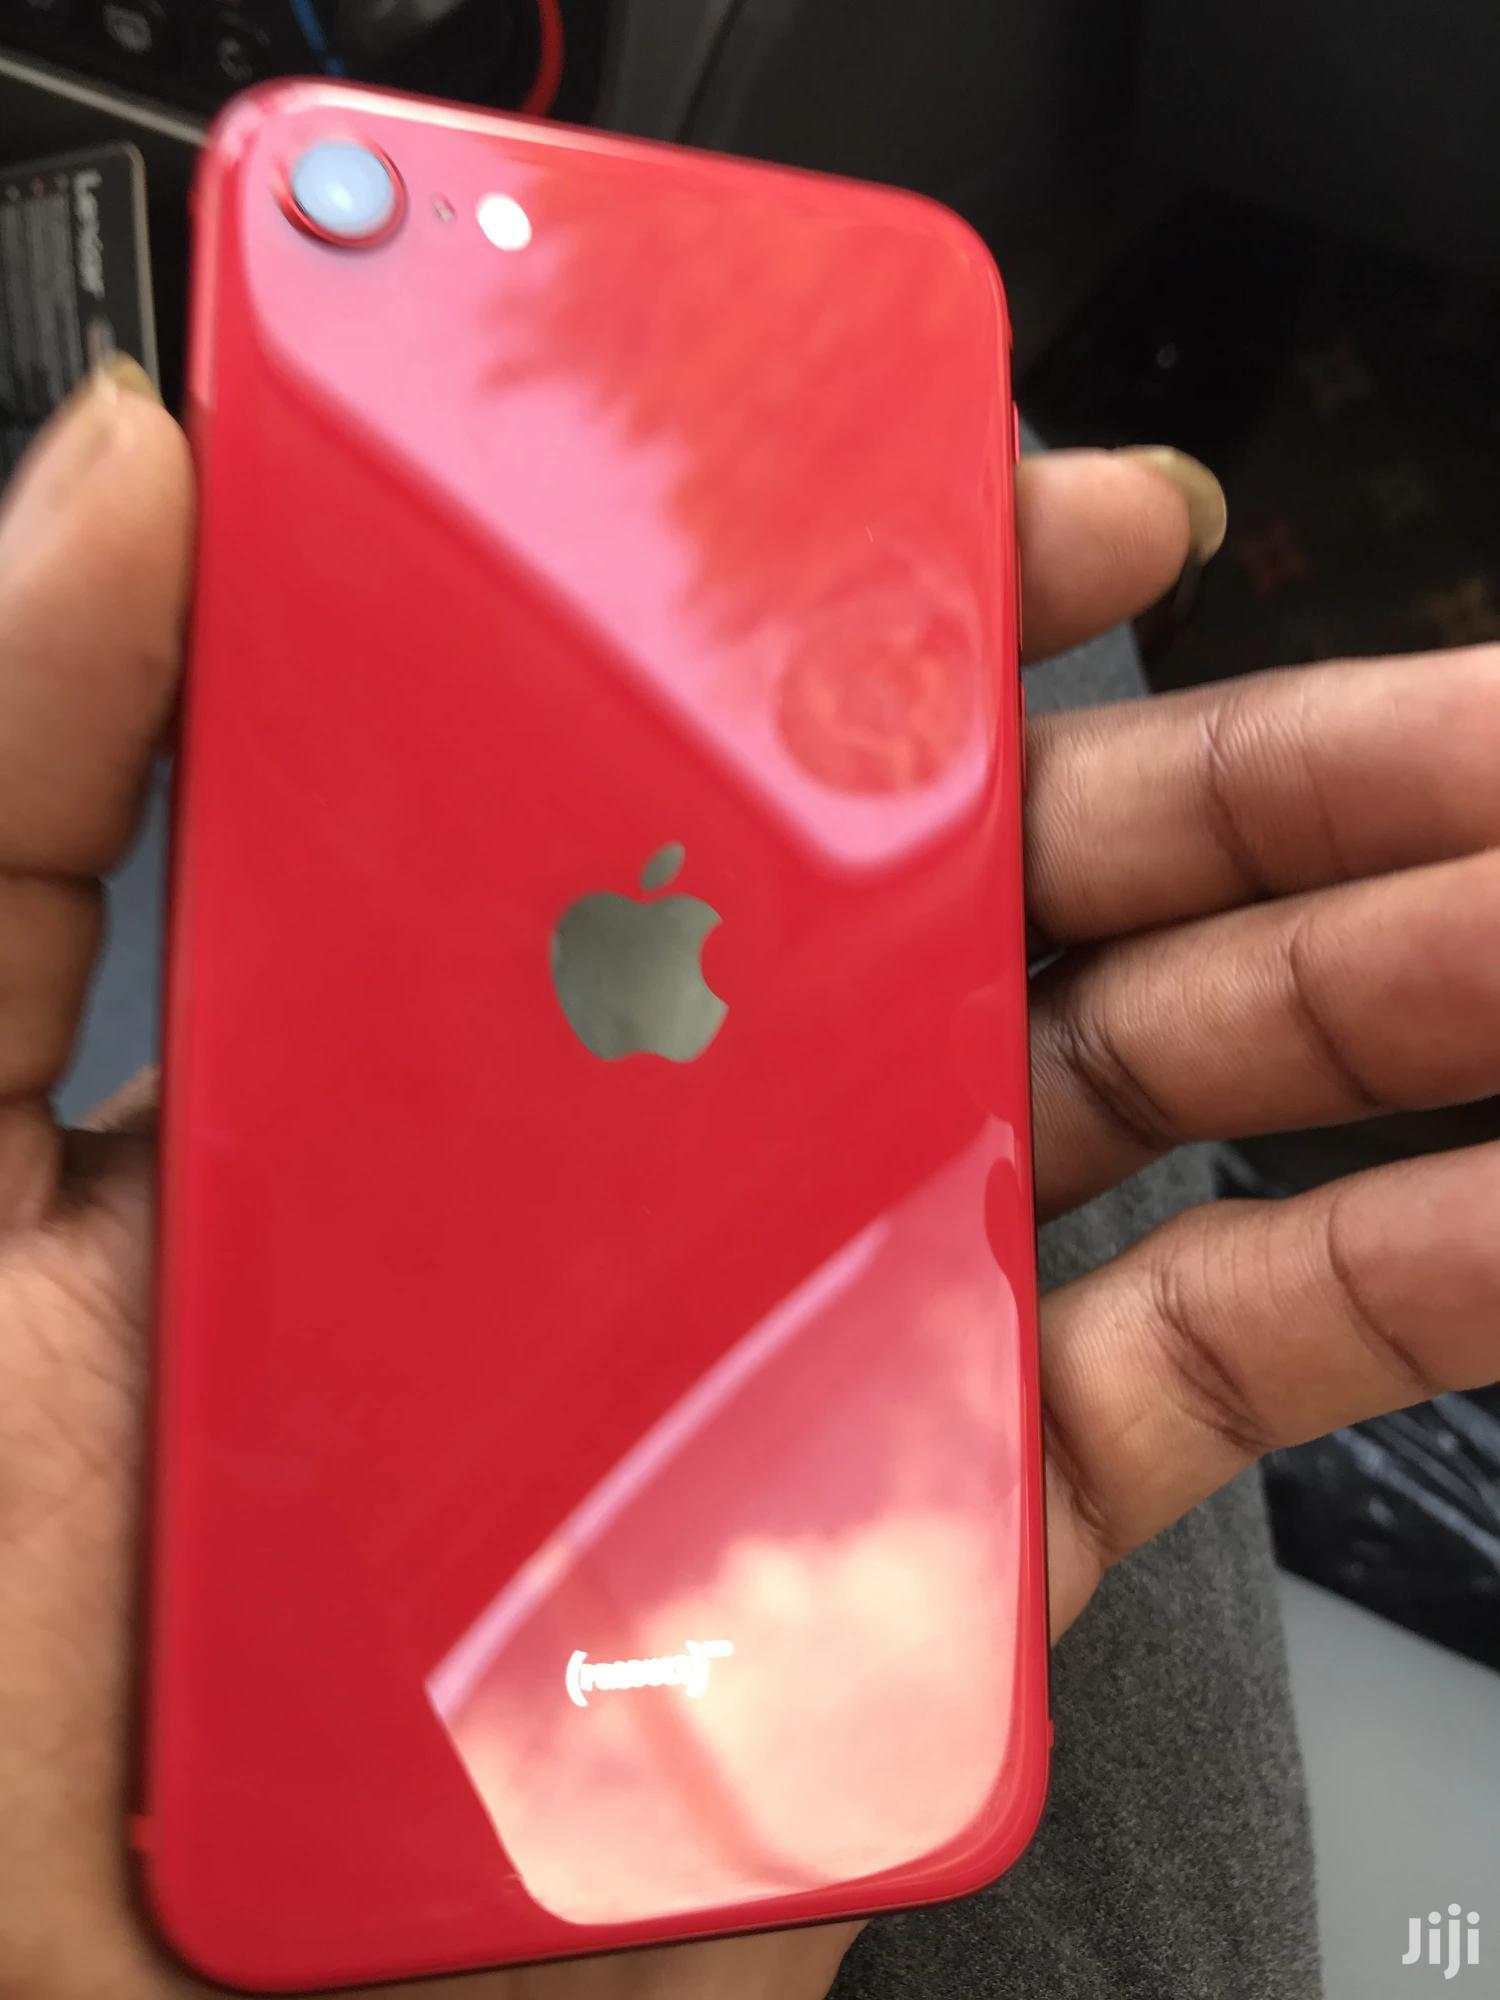 Apple iPhone SE (2020) 64 GB Red | Mobile Phones for sale in Tema Metropolitan, Greater Accra, Ghana